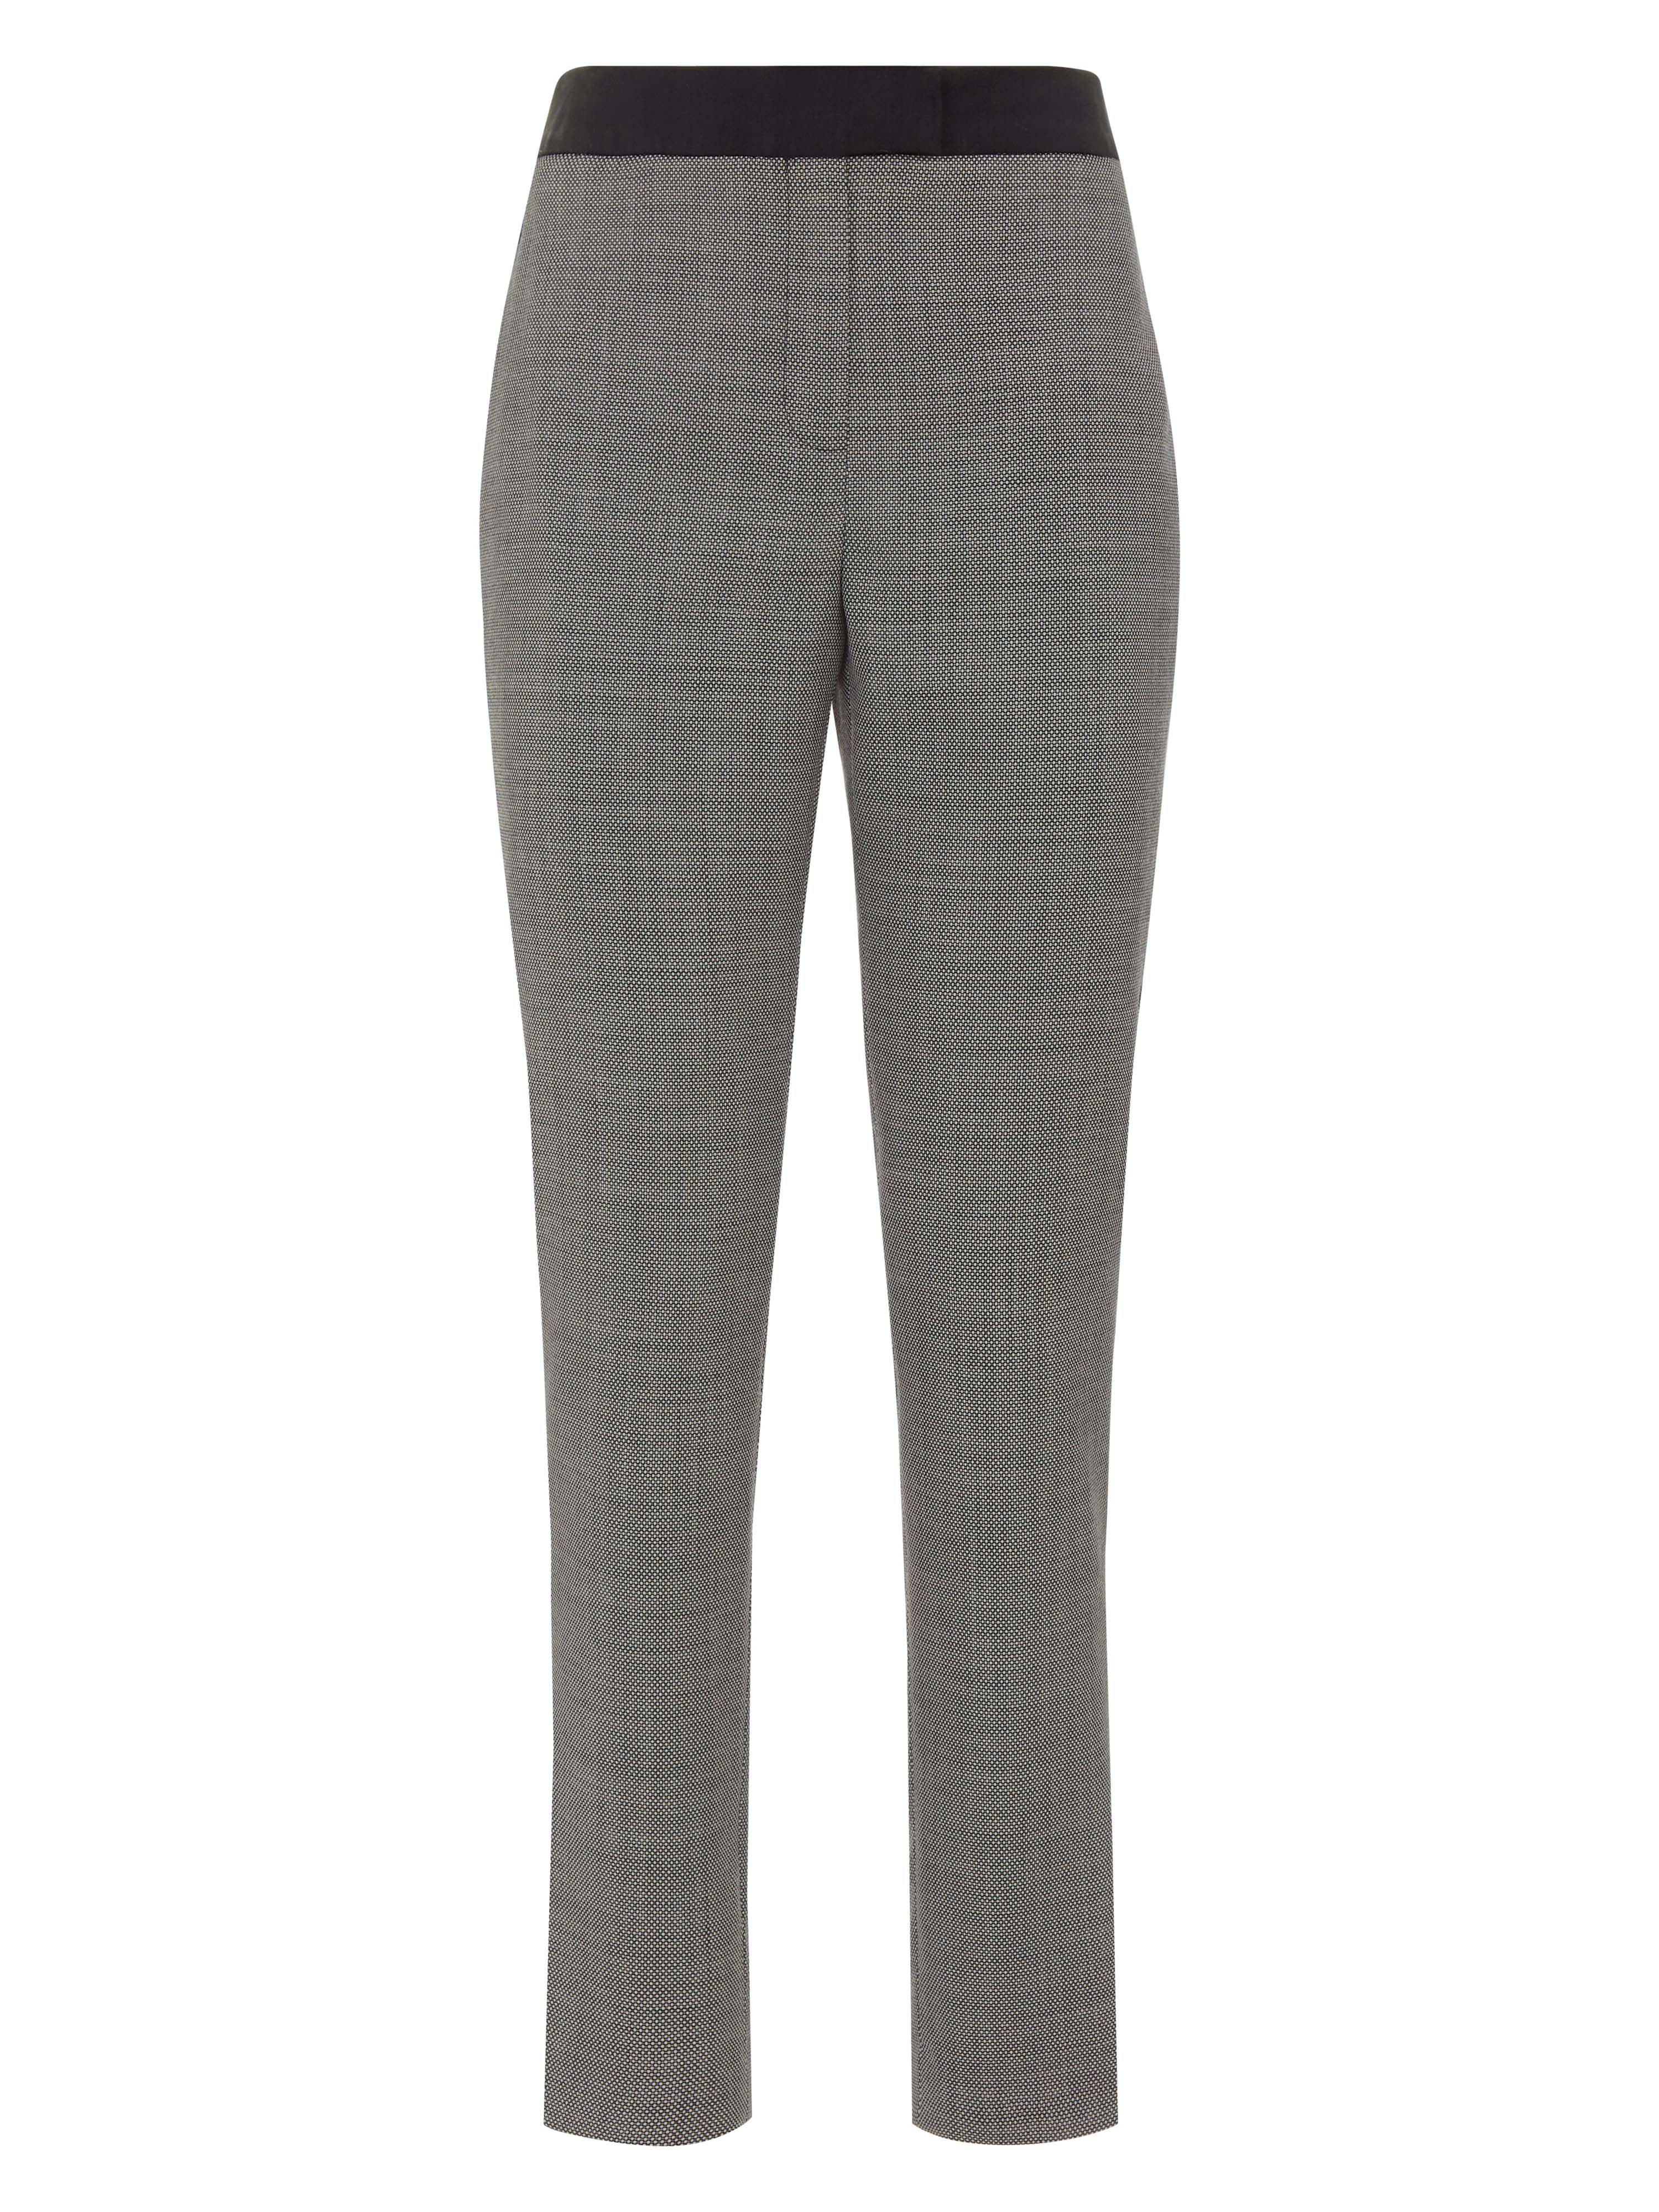 Jaeger Birdseye Piped Cigarette Trouser, Charcoal